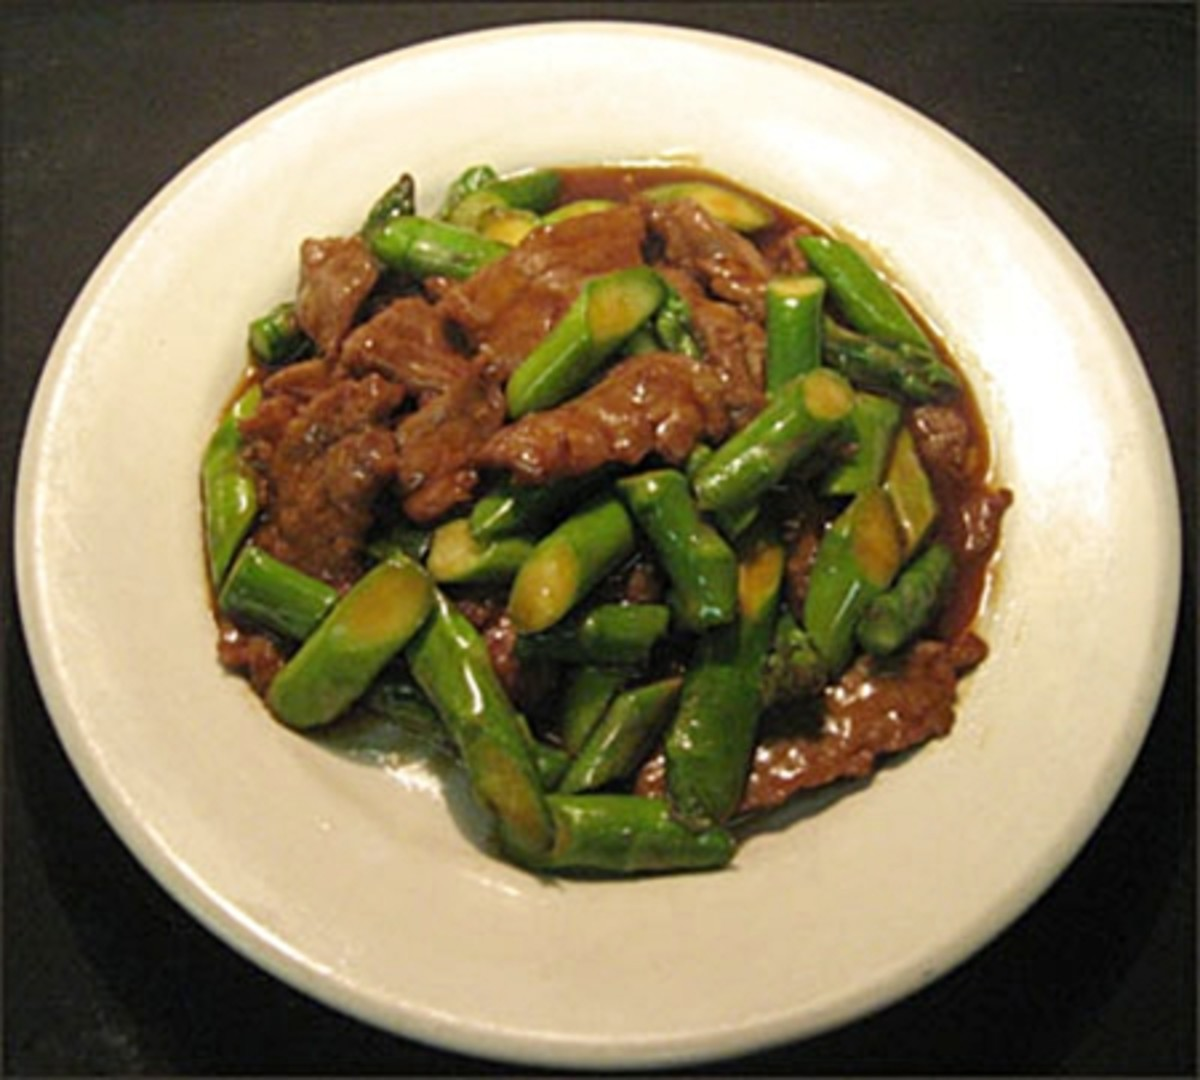 Easy Stir Fry Recipes - Beef with Asparagus in Oyster Sauce Recipe